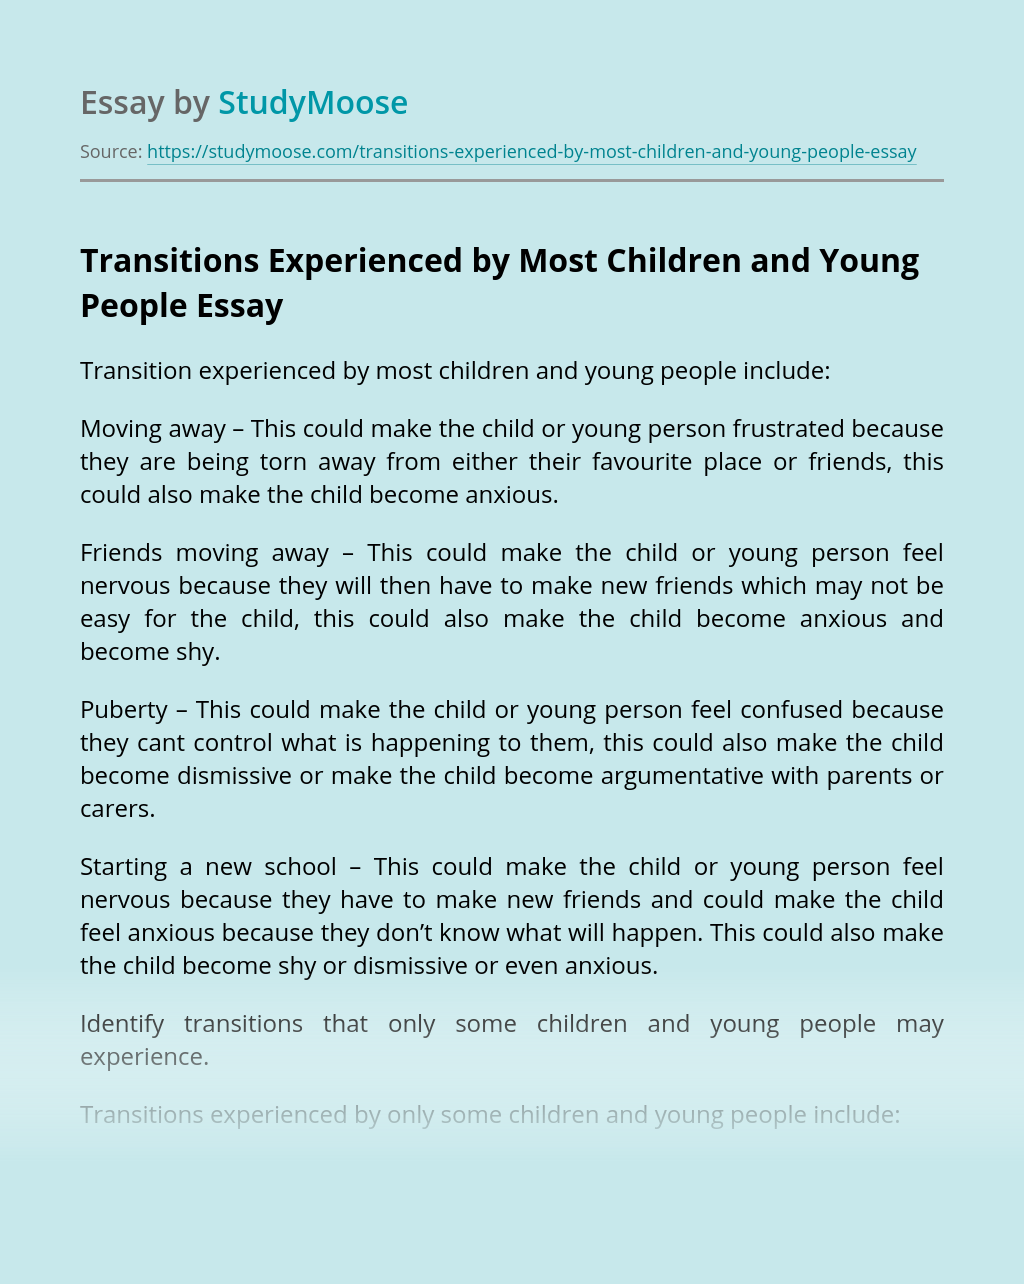 Transitions Experienced by Most Children and Young People